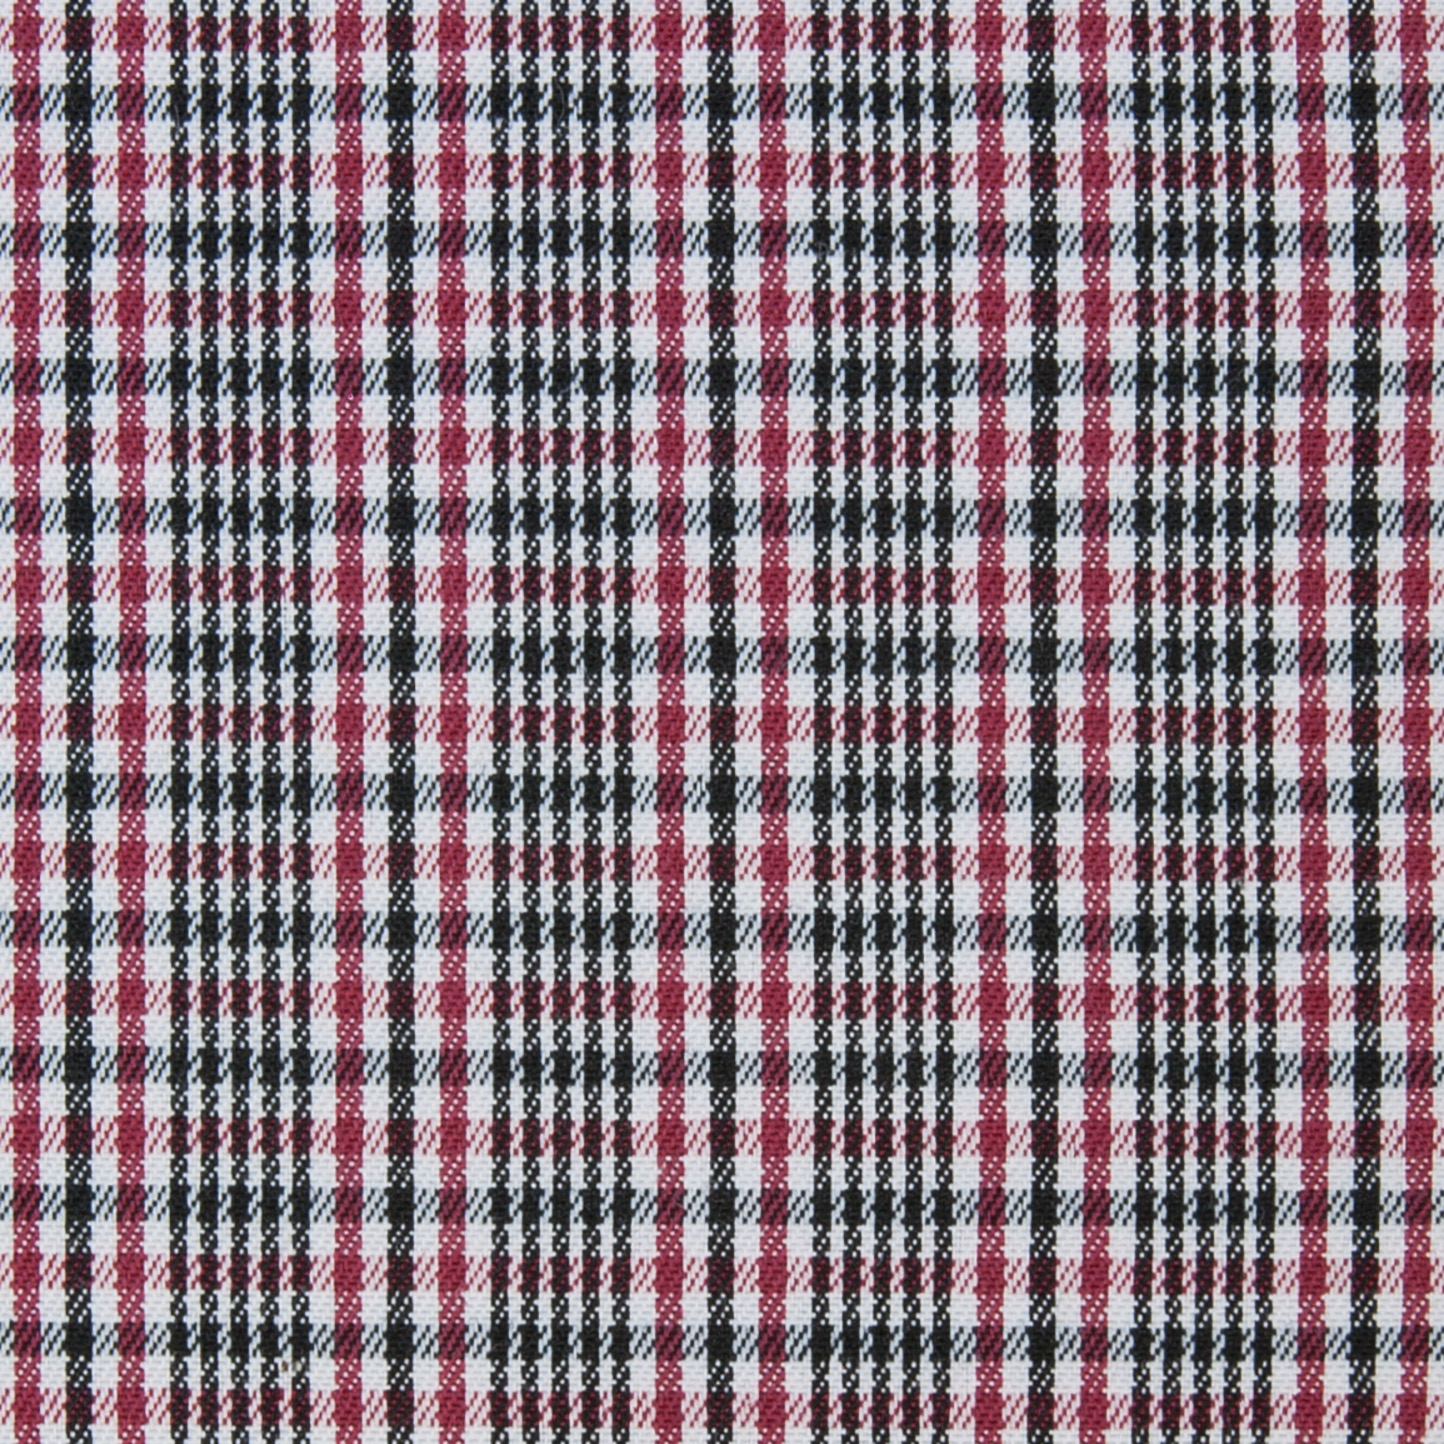 Buy tailor made shirts online - Arturo Collection - Red, White and Black Check